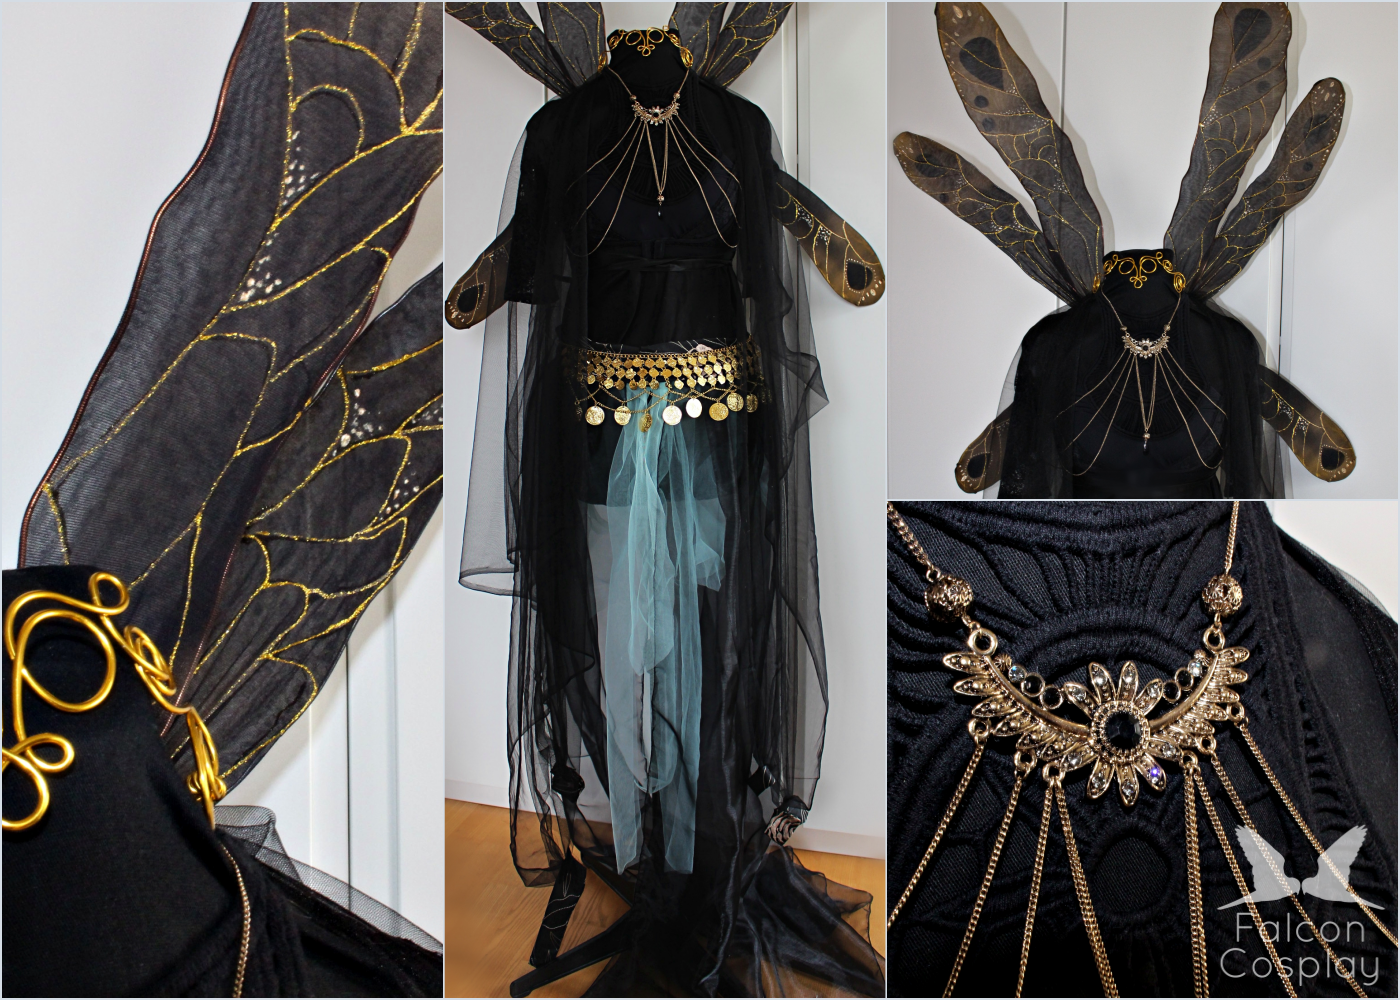 Costumes - Since a few years we love to create costumes, especially own designs are what we like! From fairies to warriors every costume is made with joy and an eye for details!